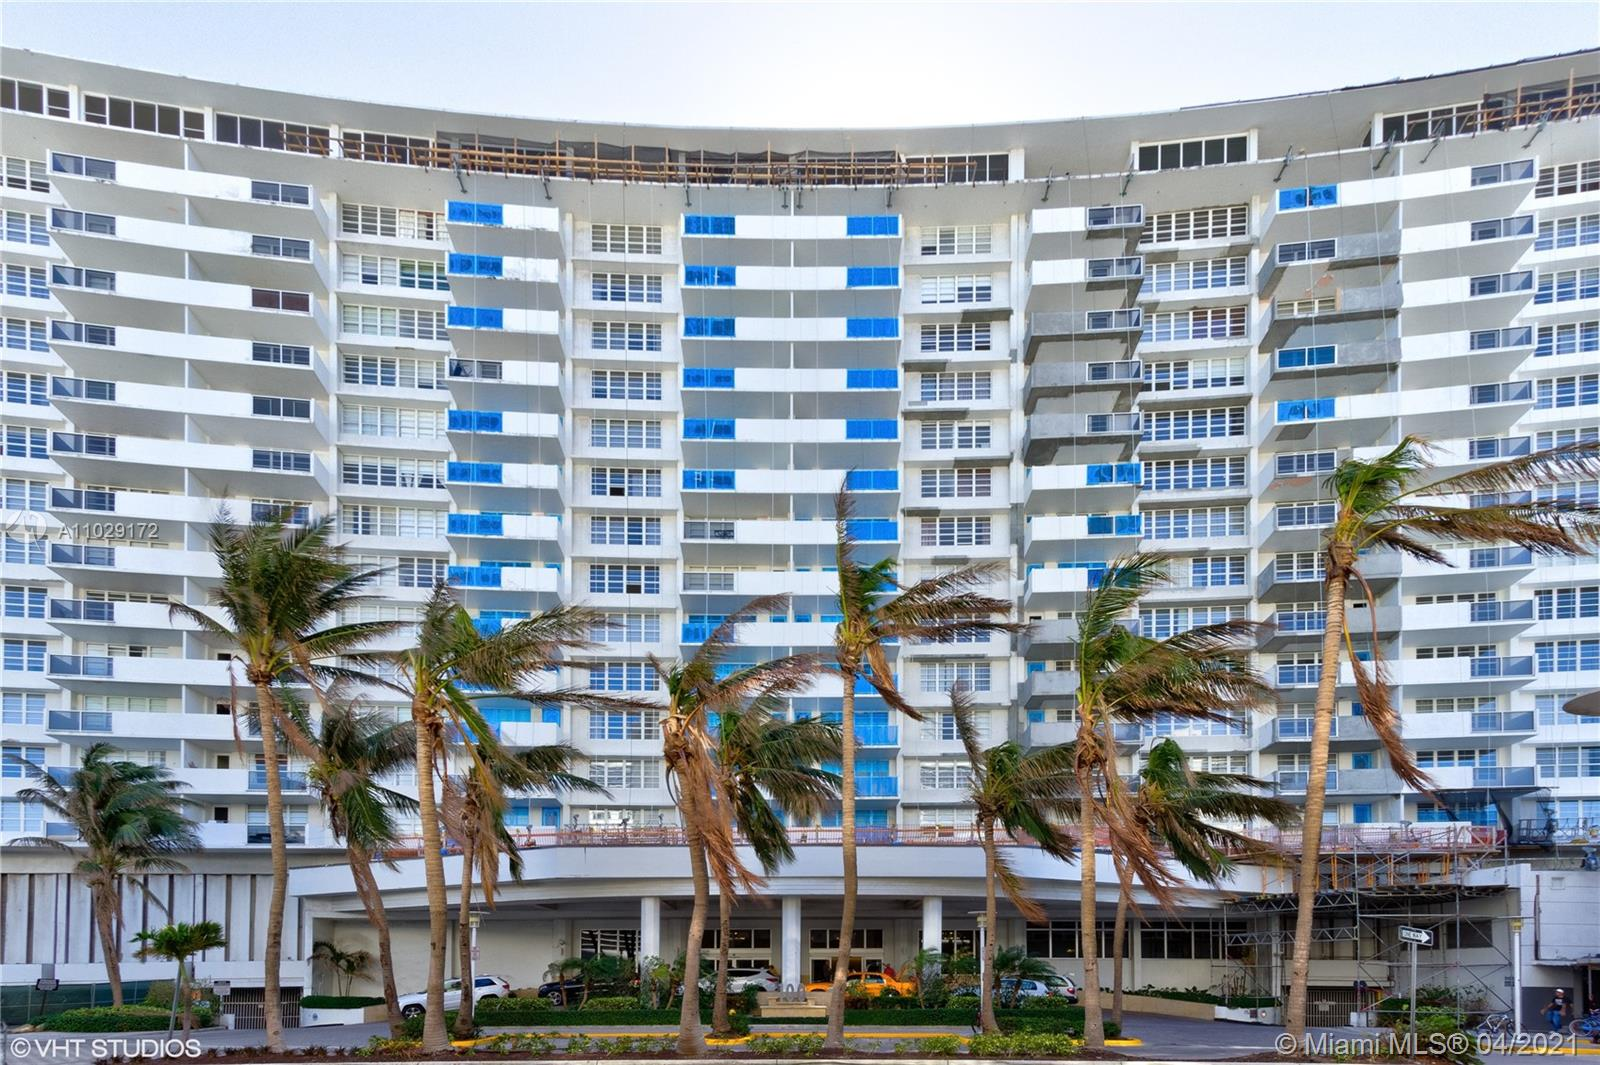 Great remodeled 1BR/1.5BA right on the beach. Granite counter tops & SS appliances. Perfect location with beach and Lincoln Rd at your door. Maintenance fee includes: basic cable, water, A/C, internet & all the amenities. One valet parking. Very good investment, you can live at the unit and make a good income when you are not there. Short term rental with a minimum of 30 days are allowed in the Building. Furniture is included with the right offer.